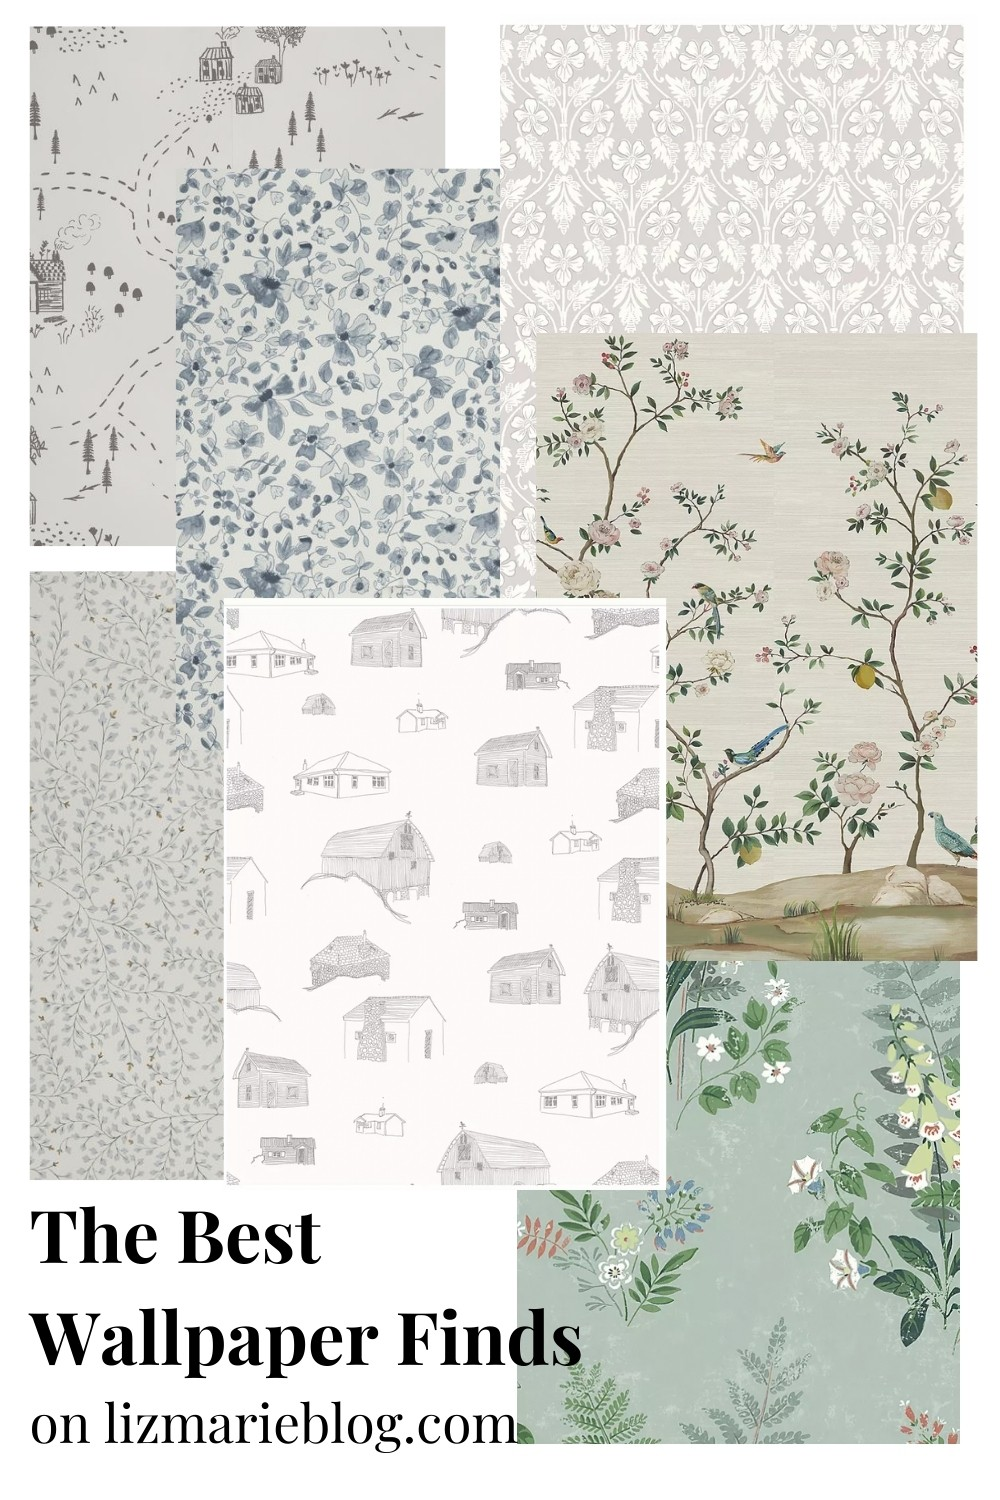 The Best Wallpaper Finds